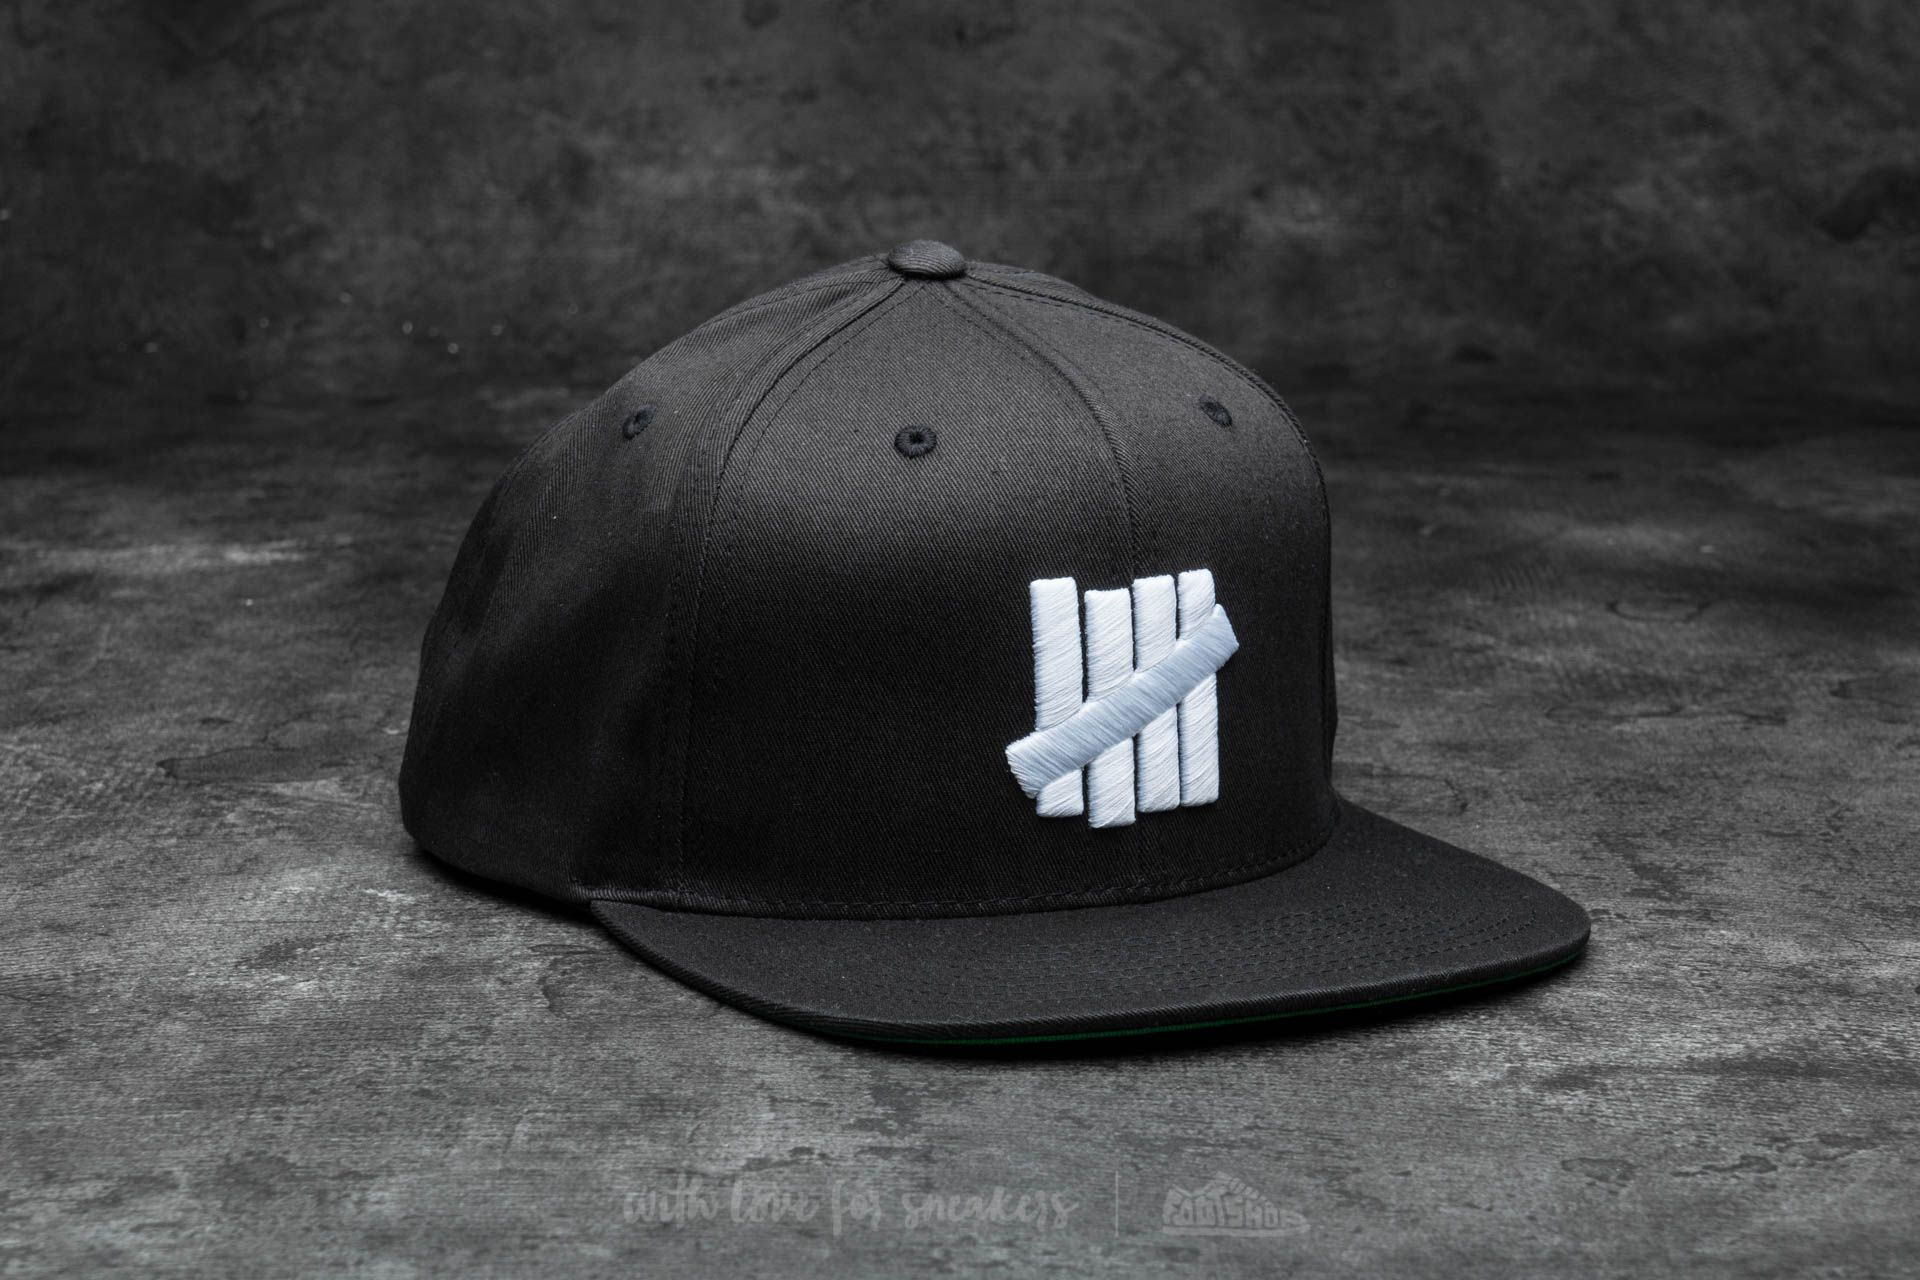 Undefeated 5 Strike Snapback Ball Cap Black - 14513